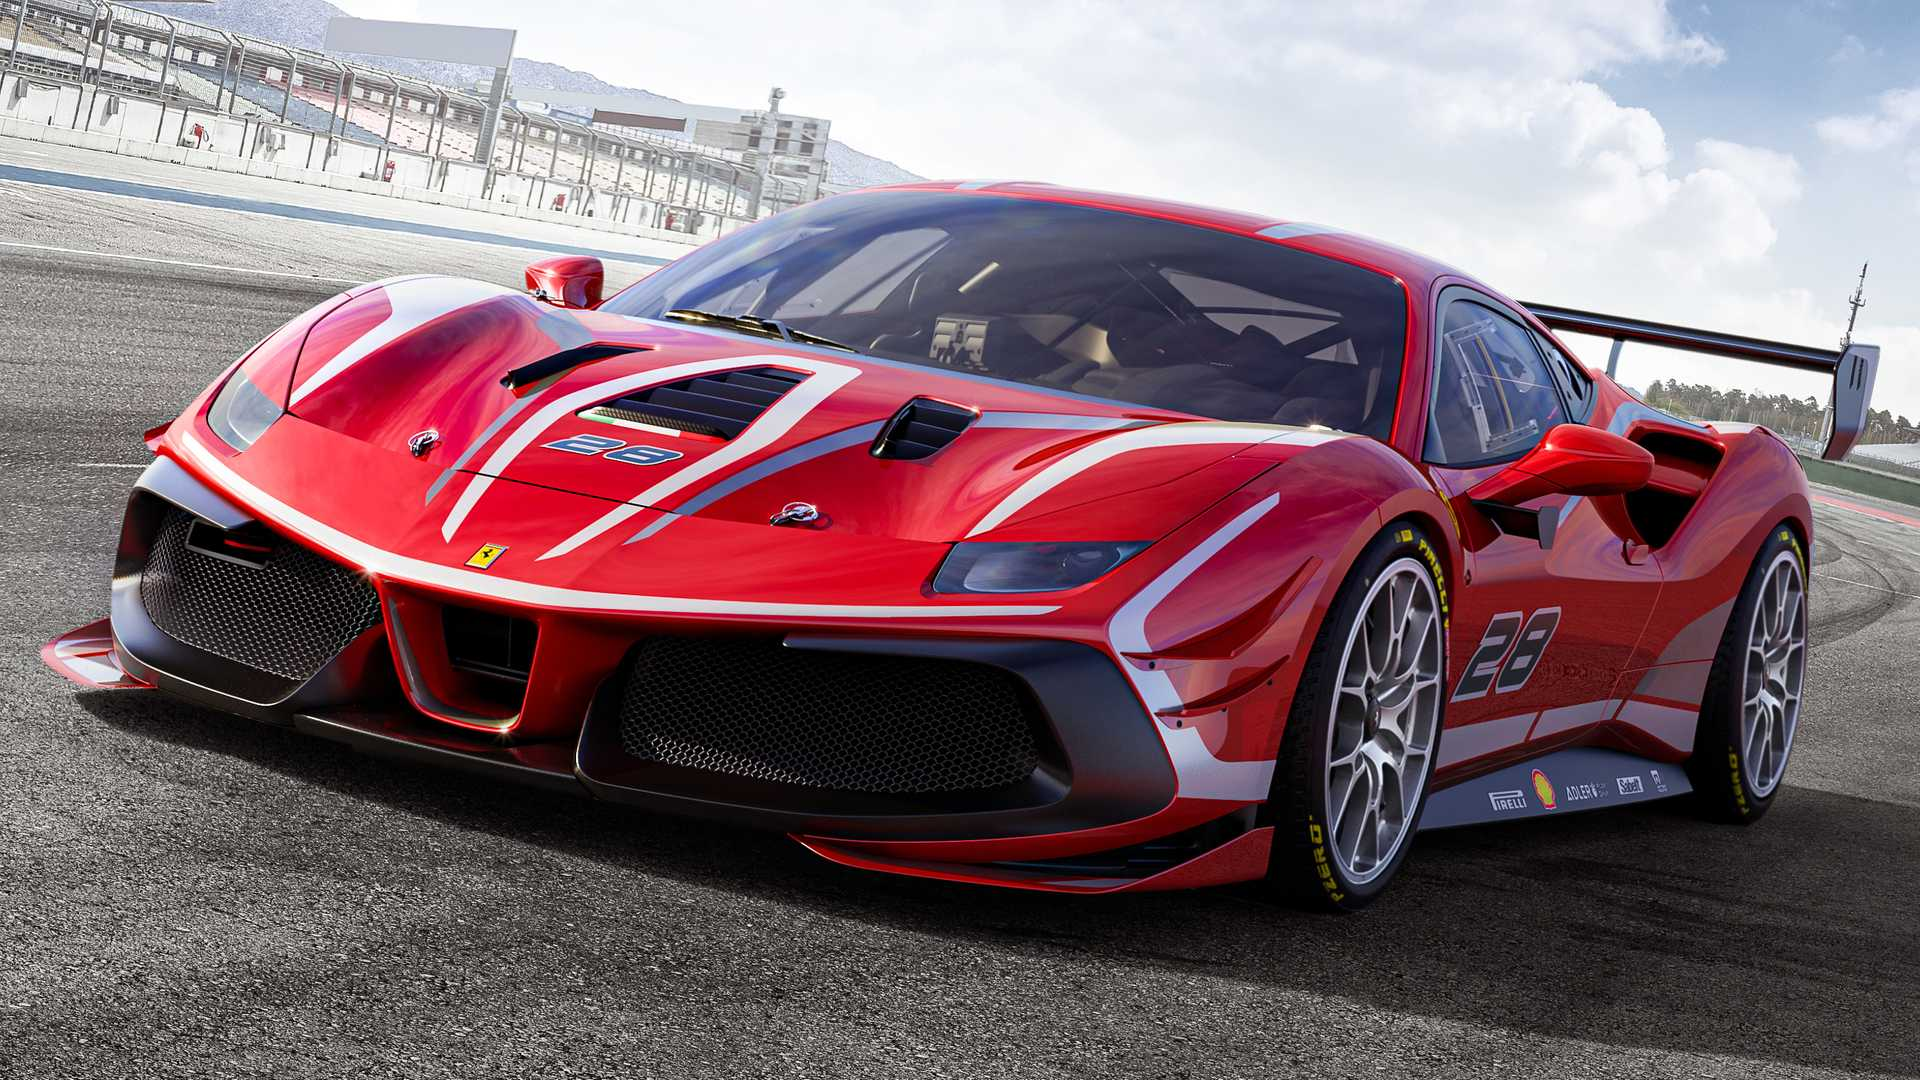 Ferrari 488 Challenge Evo Ready To Race With Refined Aero Performance 1920x1080